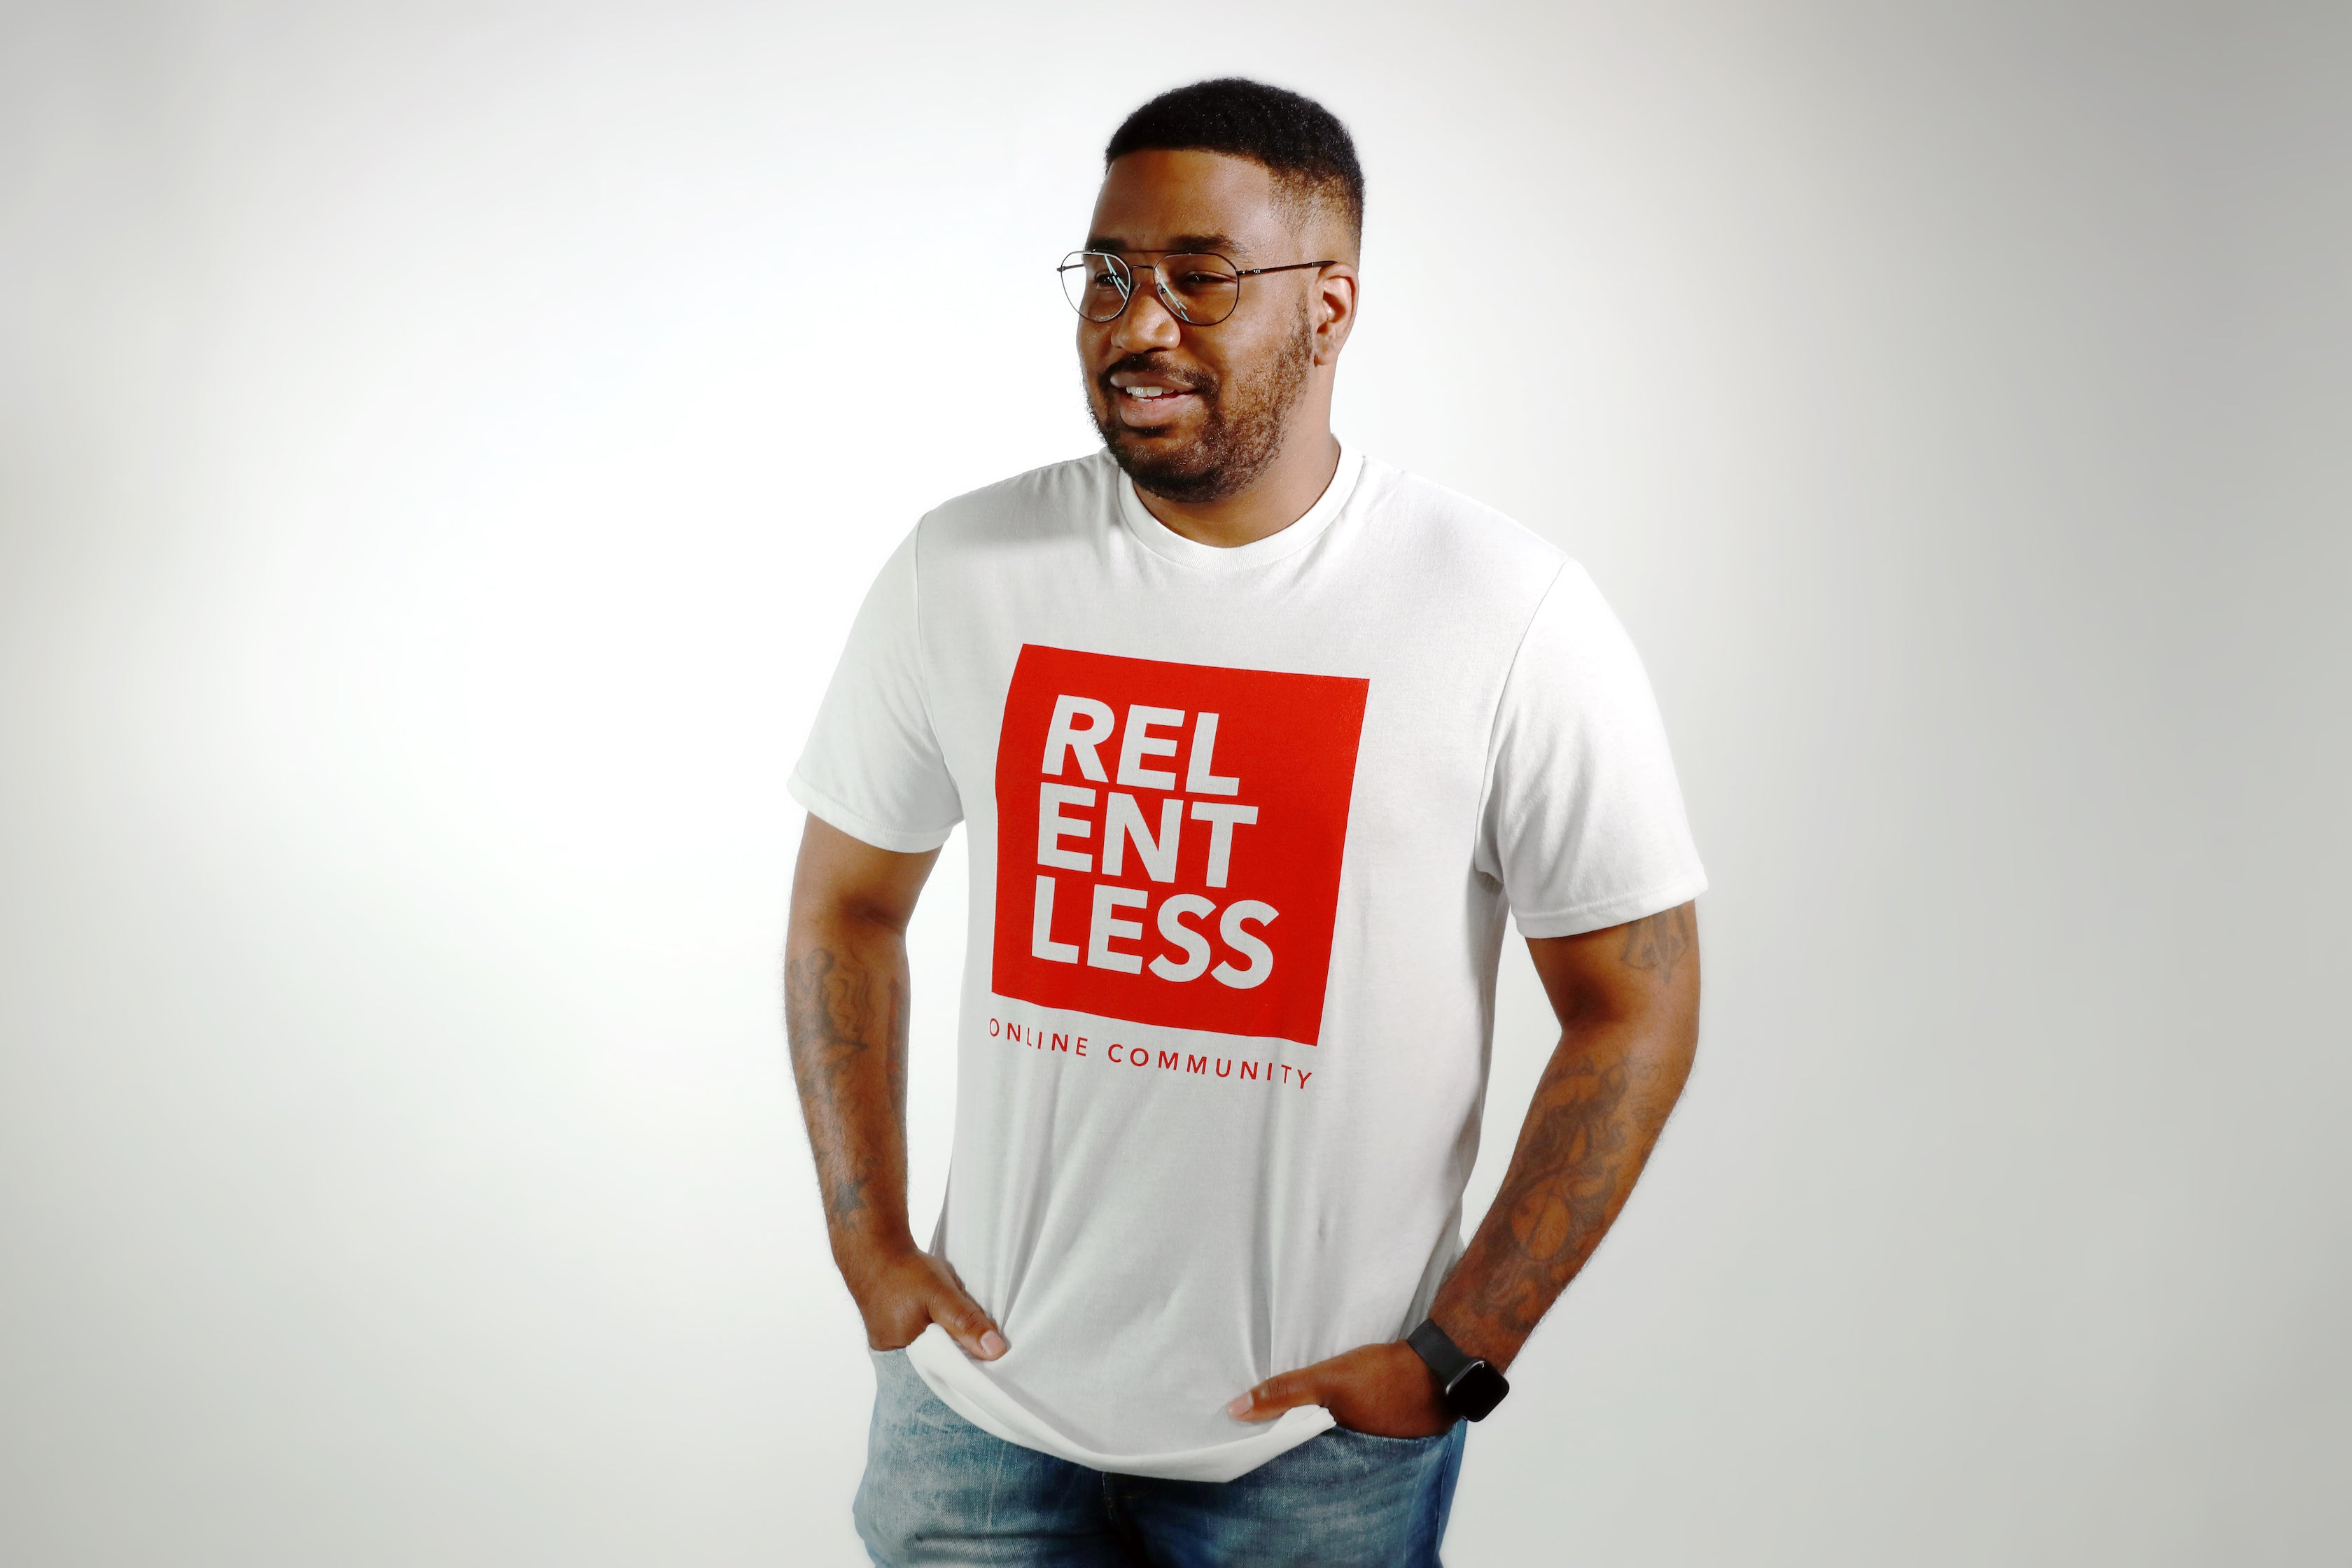 Relentless Online Community (ROC) Shirt